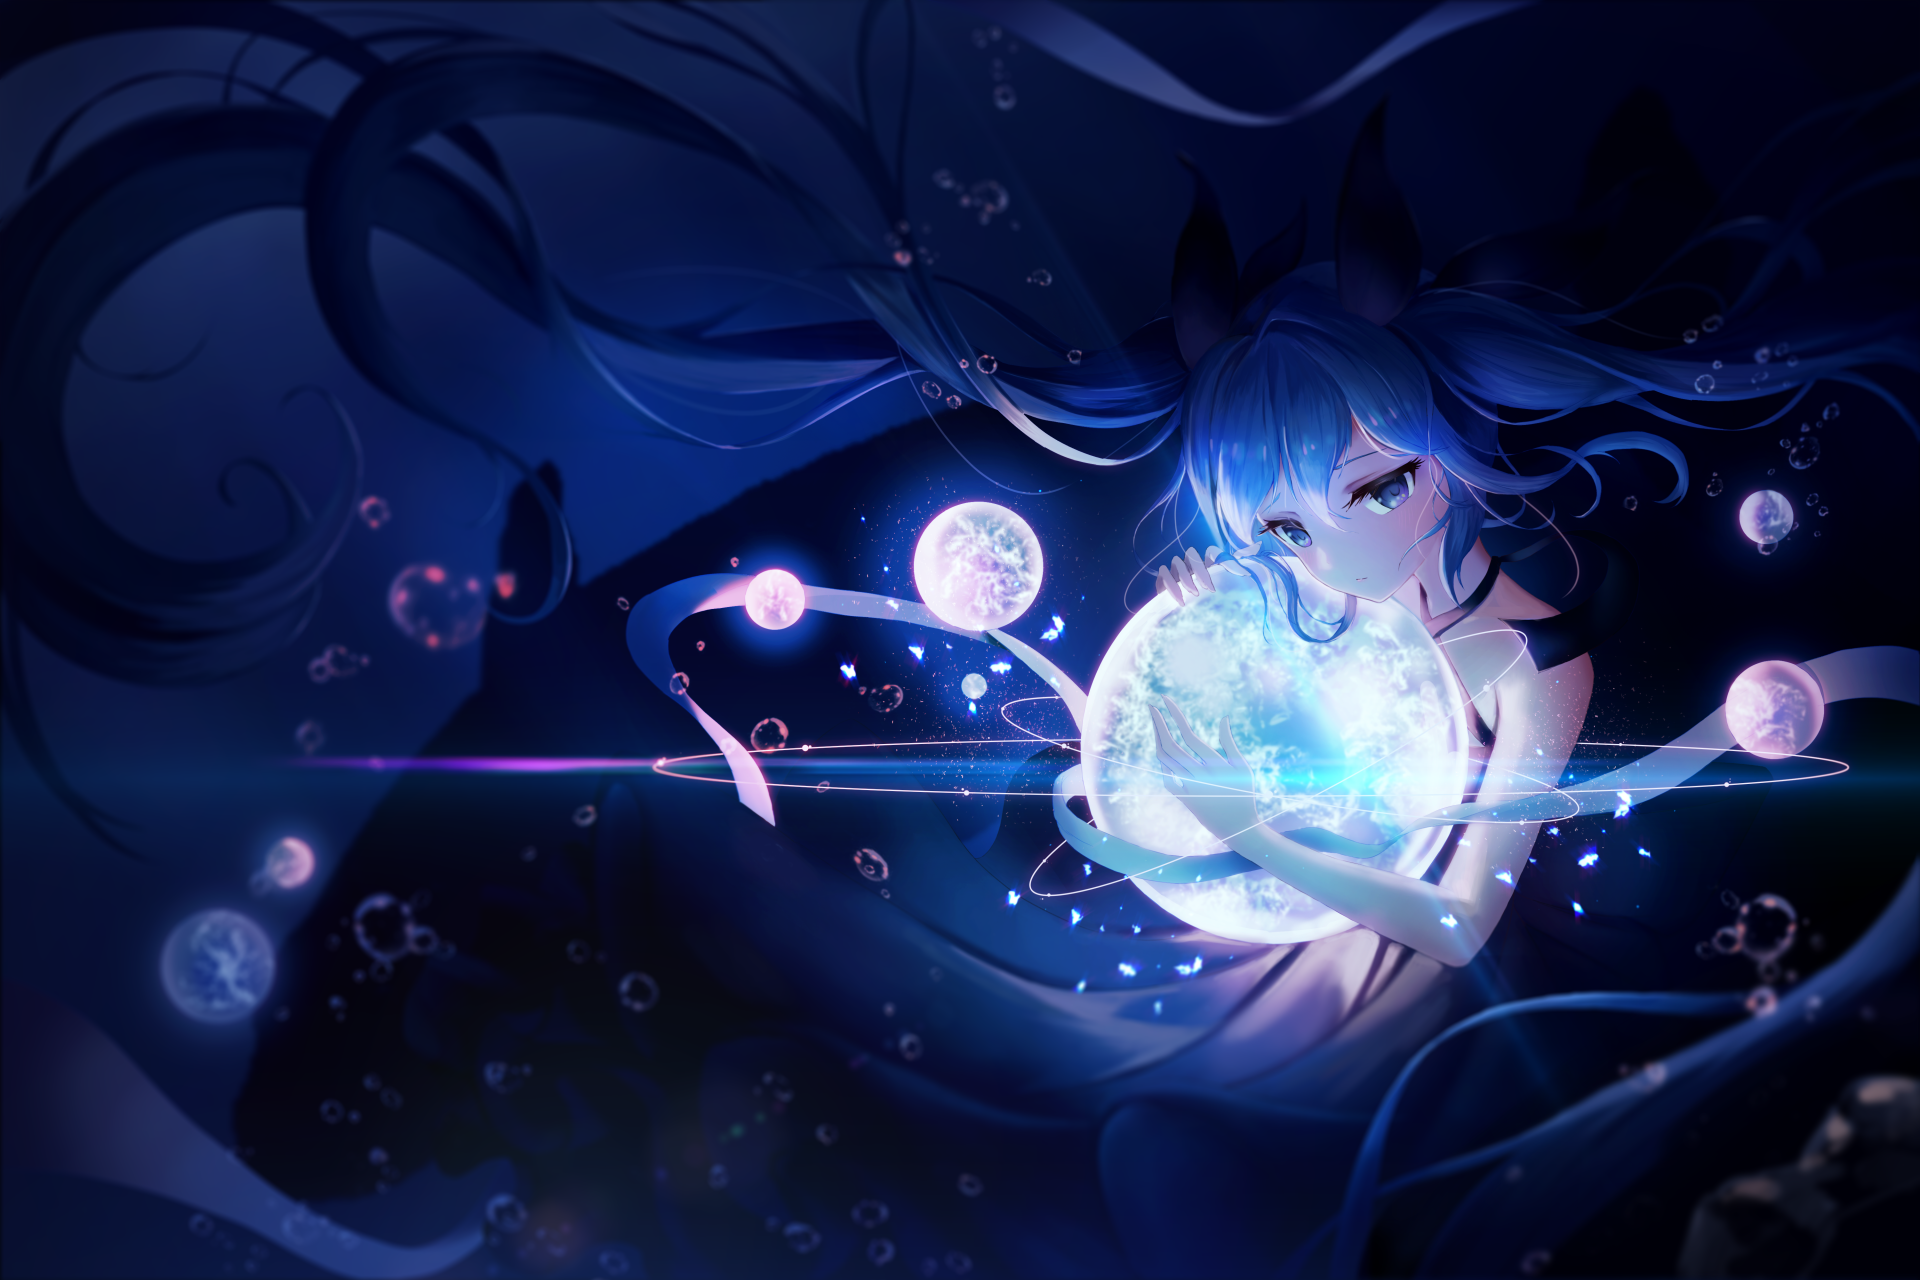 Wallpapers ID:1096475